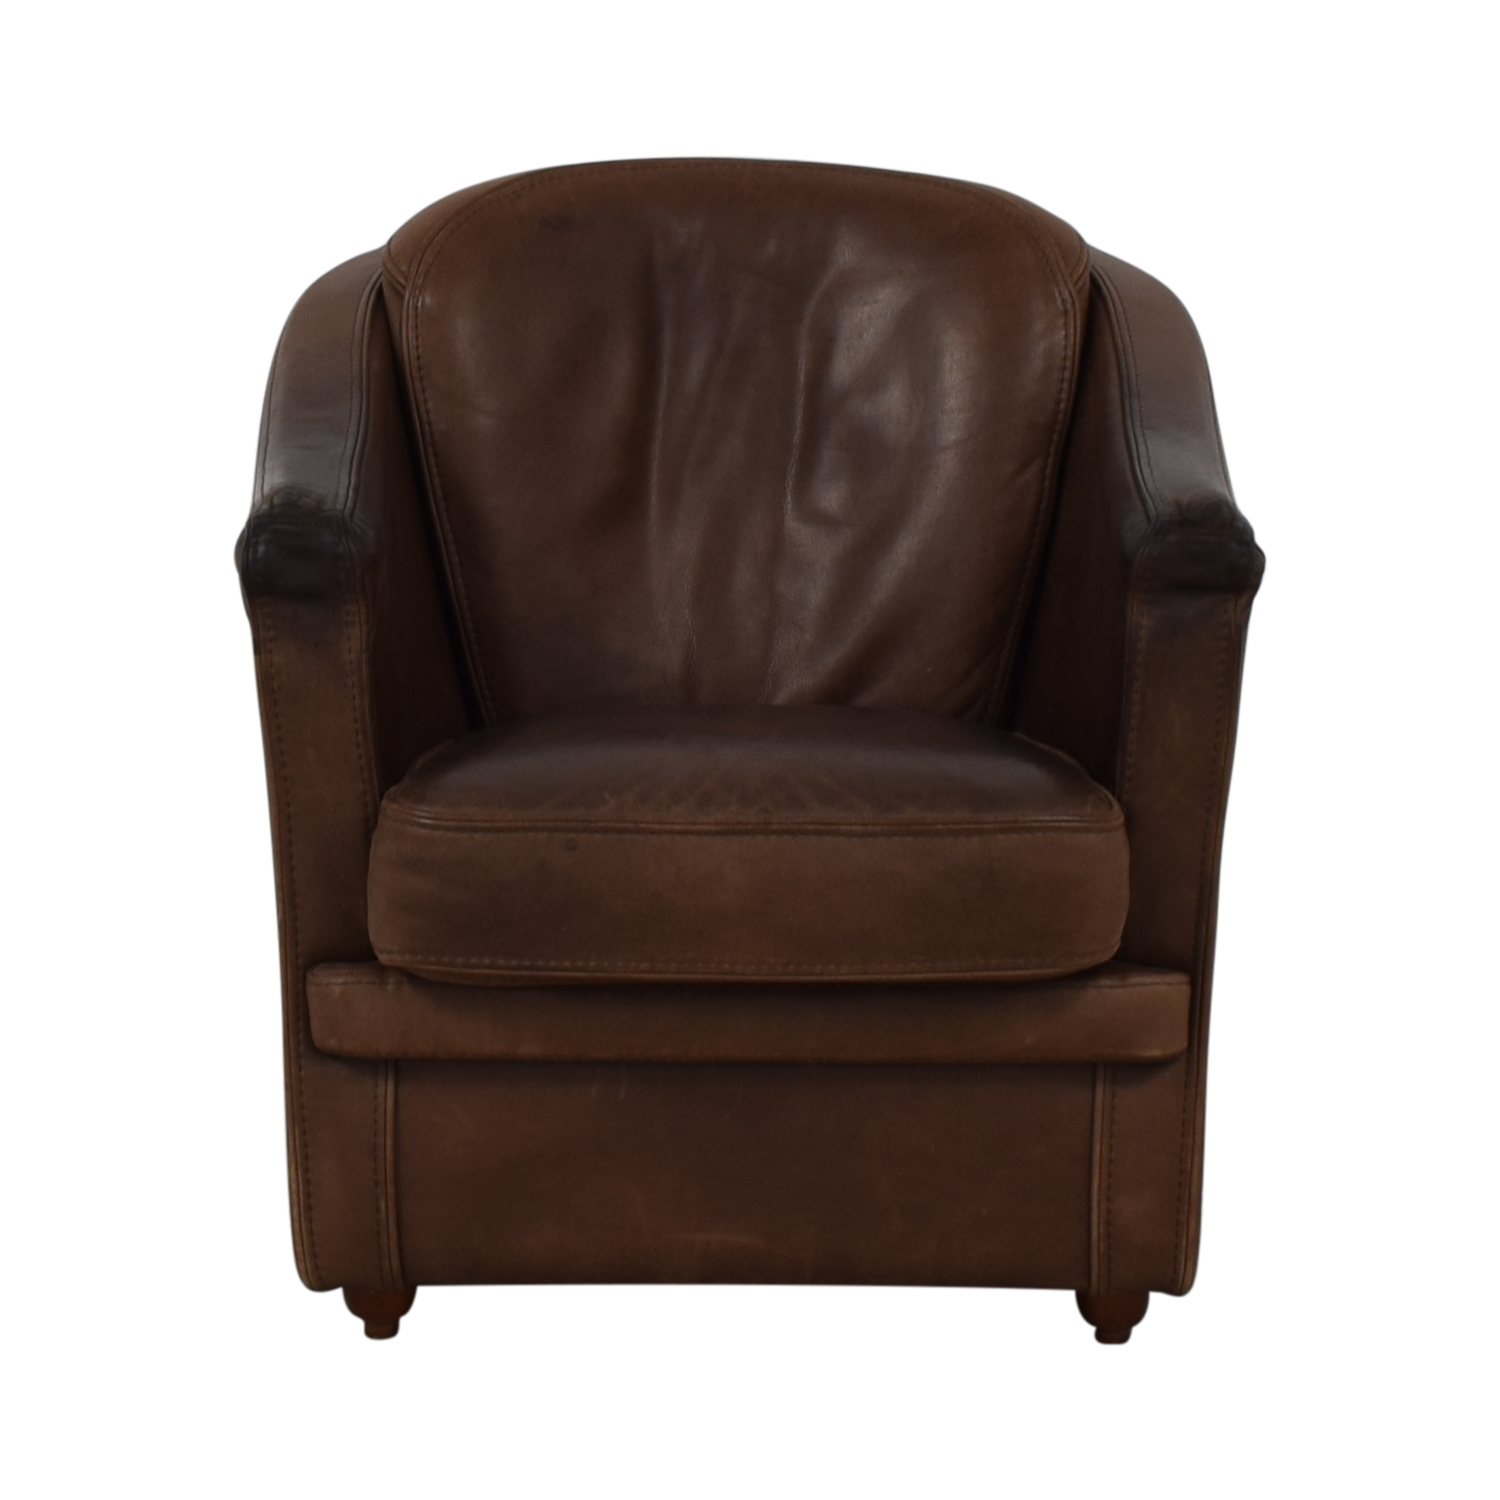 Maurice Villency Leather Armchair / Chairs